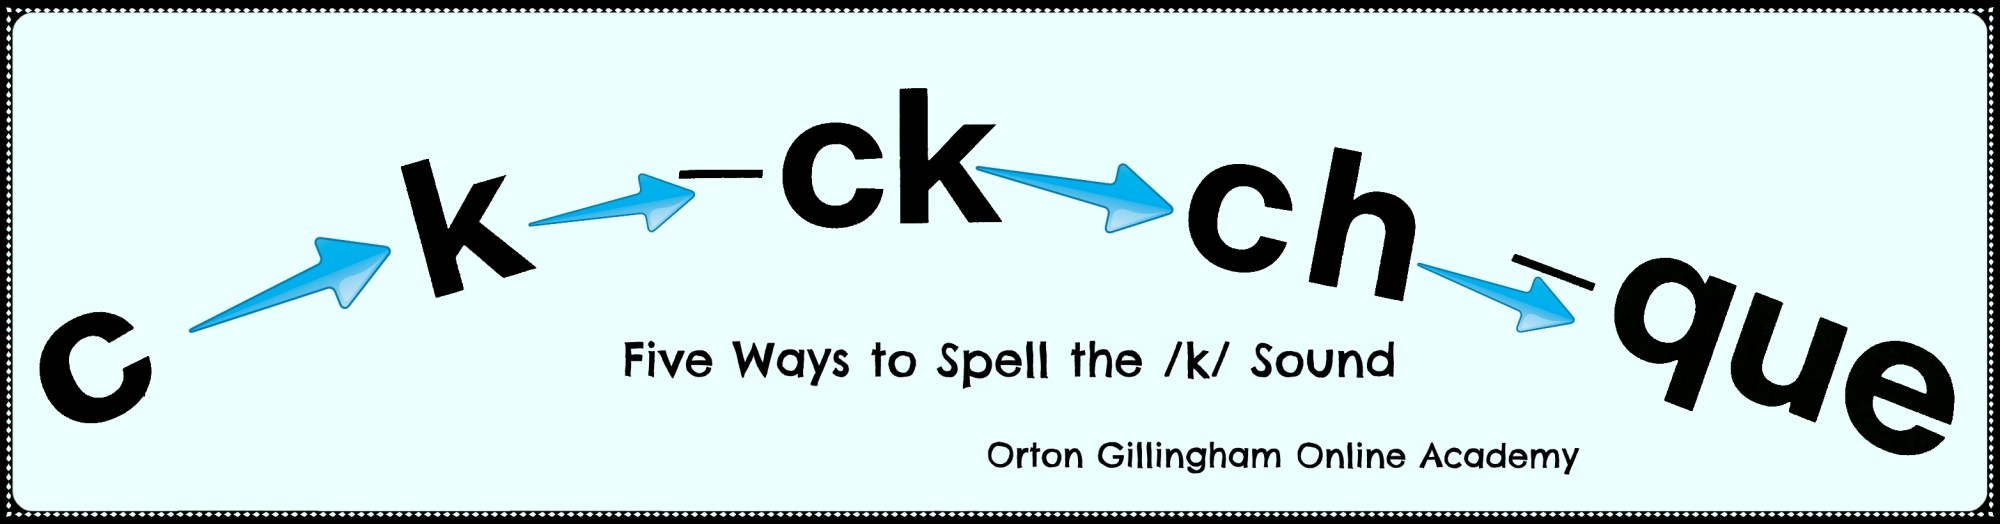 hight resolution of Five Spellings for the /k/ Sound   Orton Gillingham Online Academy